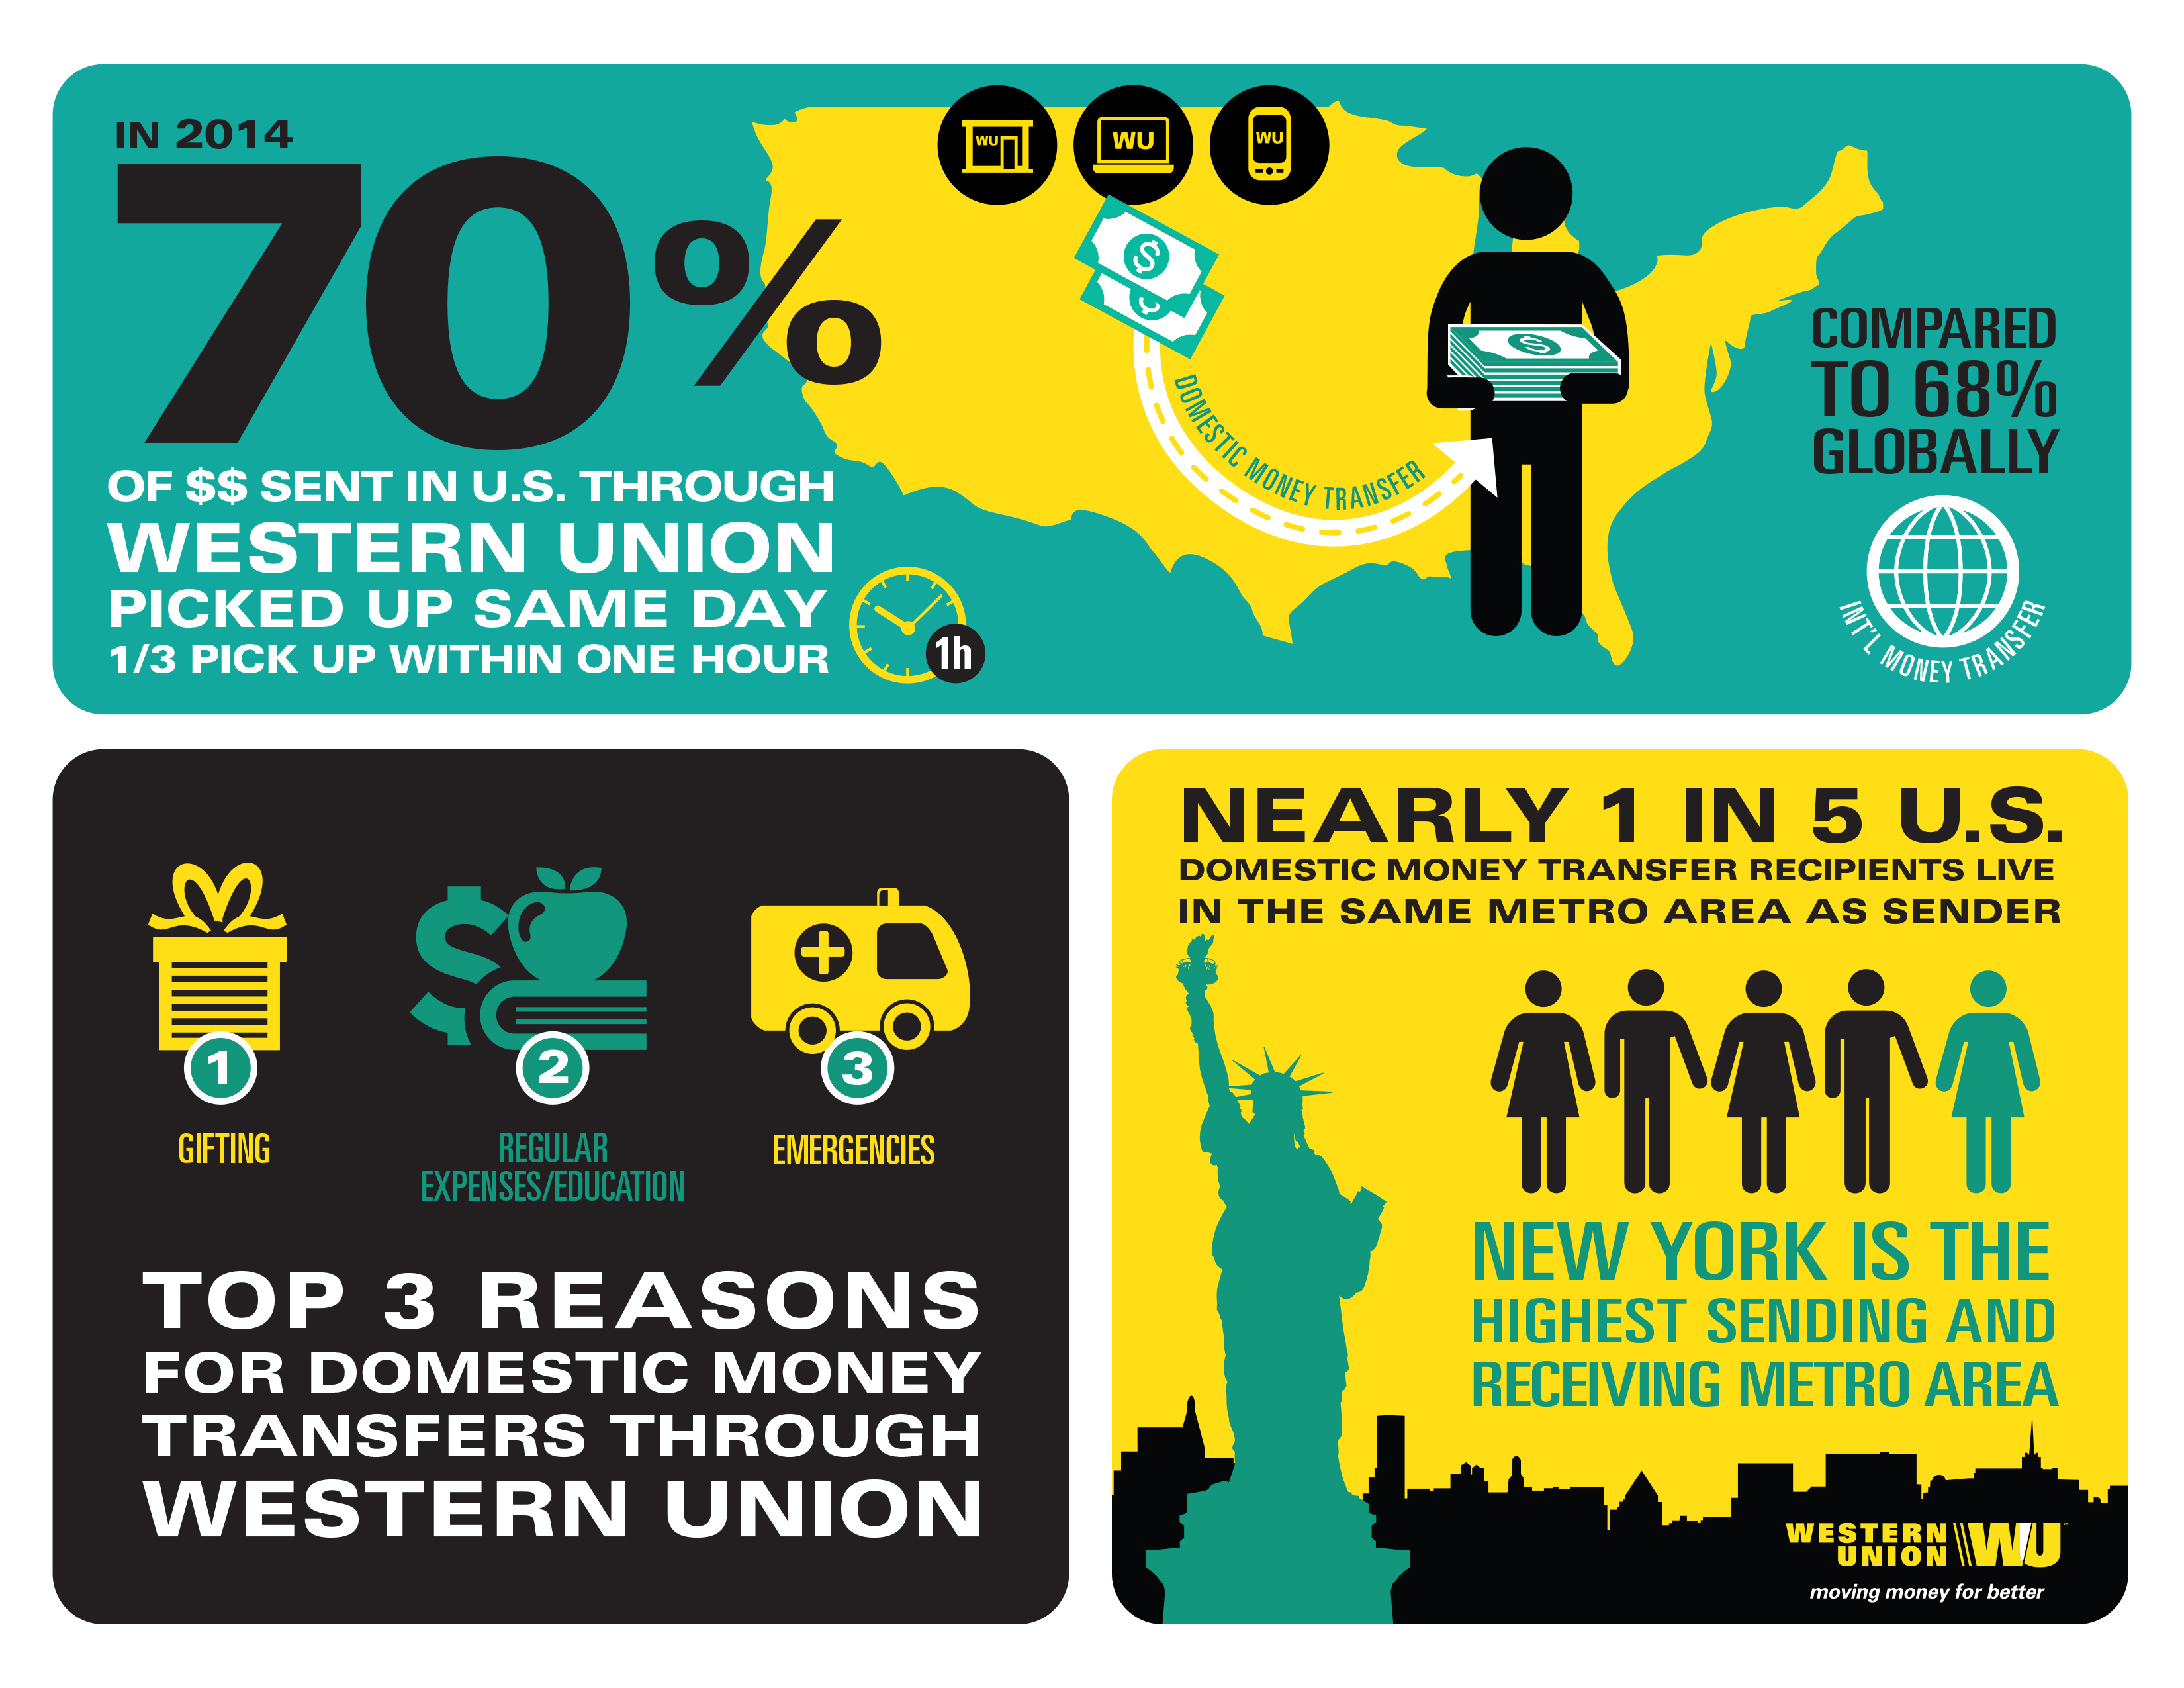 Western union - Western Union U S Domestic Money Transfer Trends And Insights Graphic Business Wire